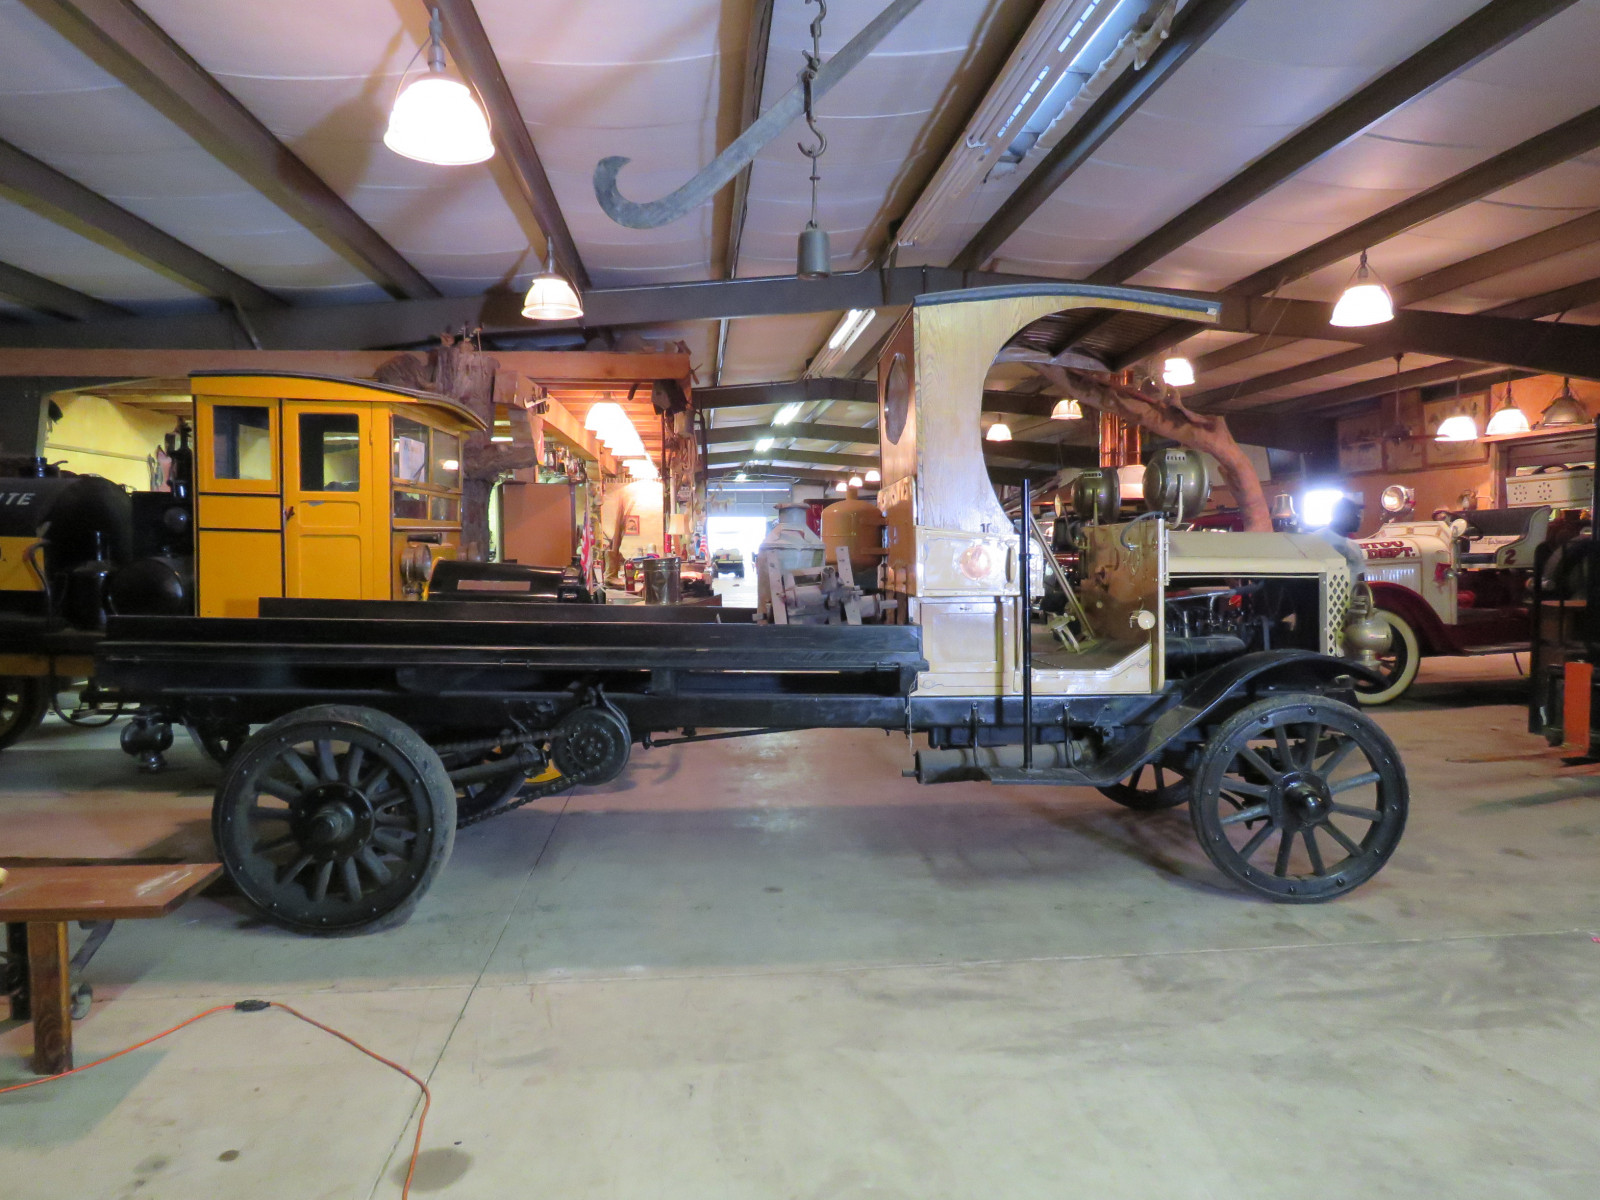 1914 REO Speedwagon Model J 2 Ton Truck - Image 8